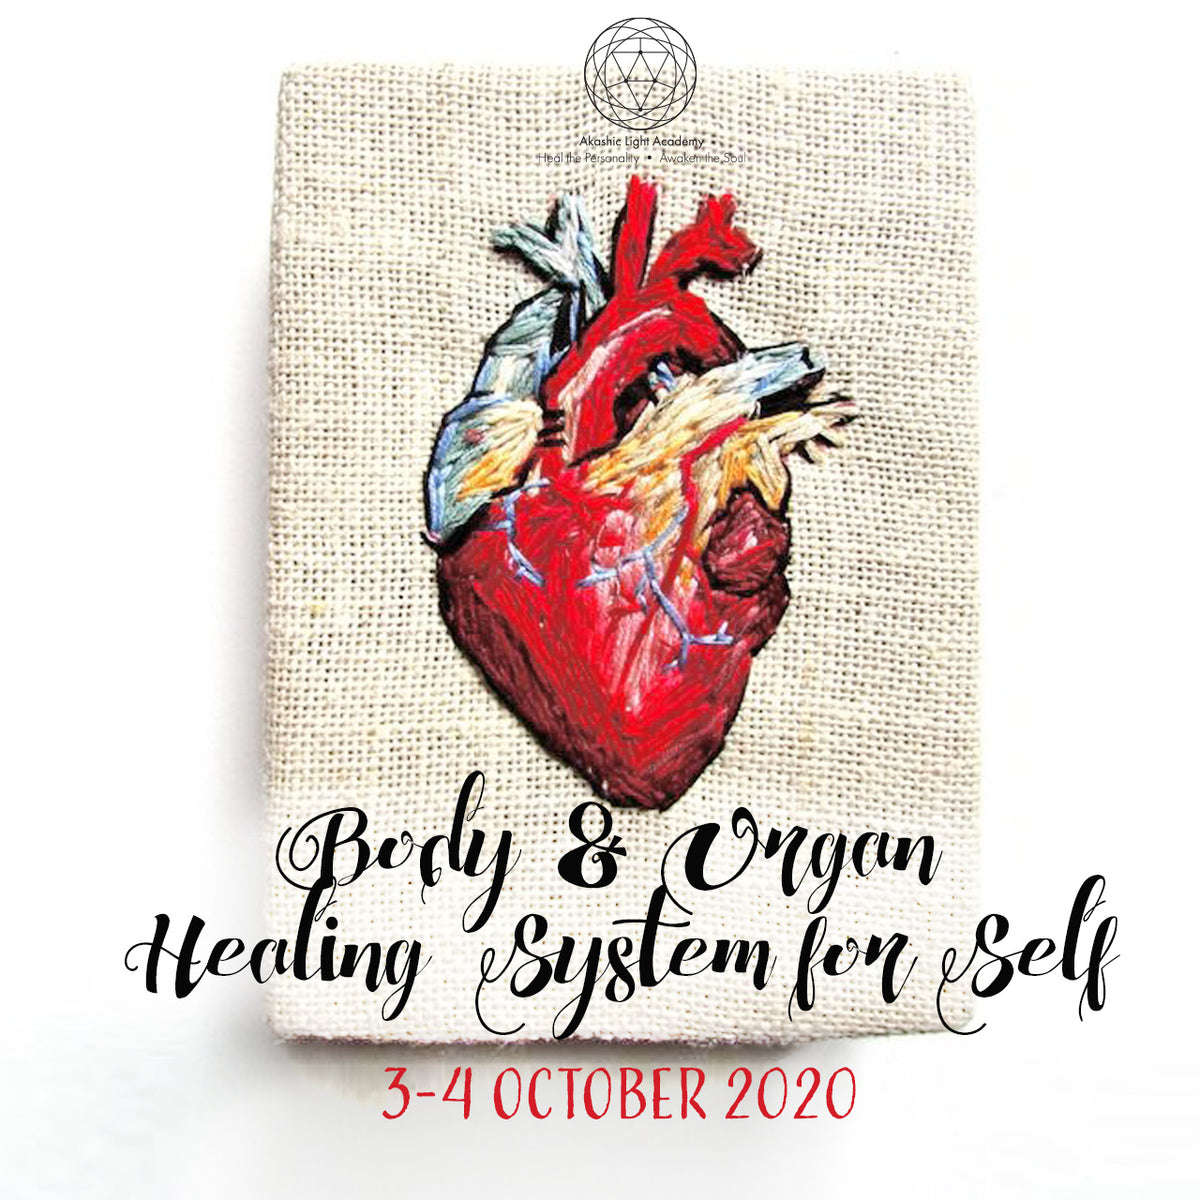 Body & Organ Healing System For Self